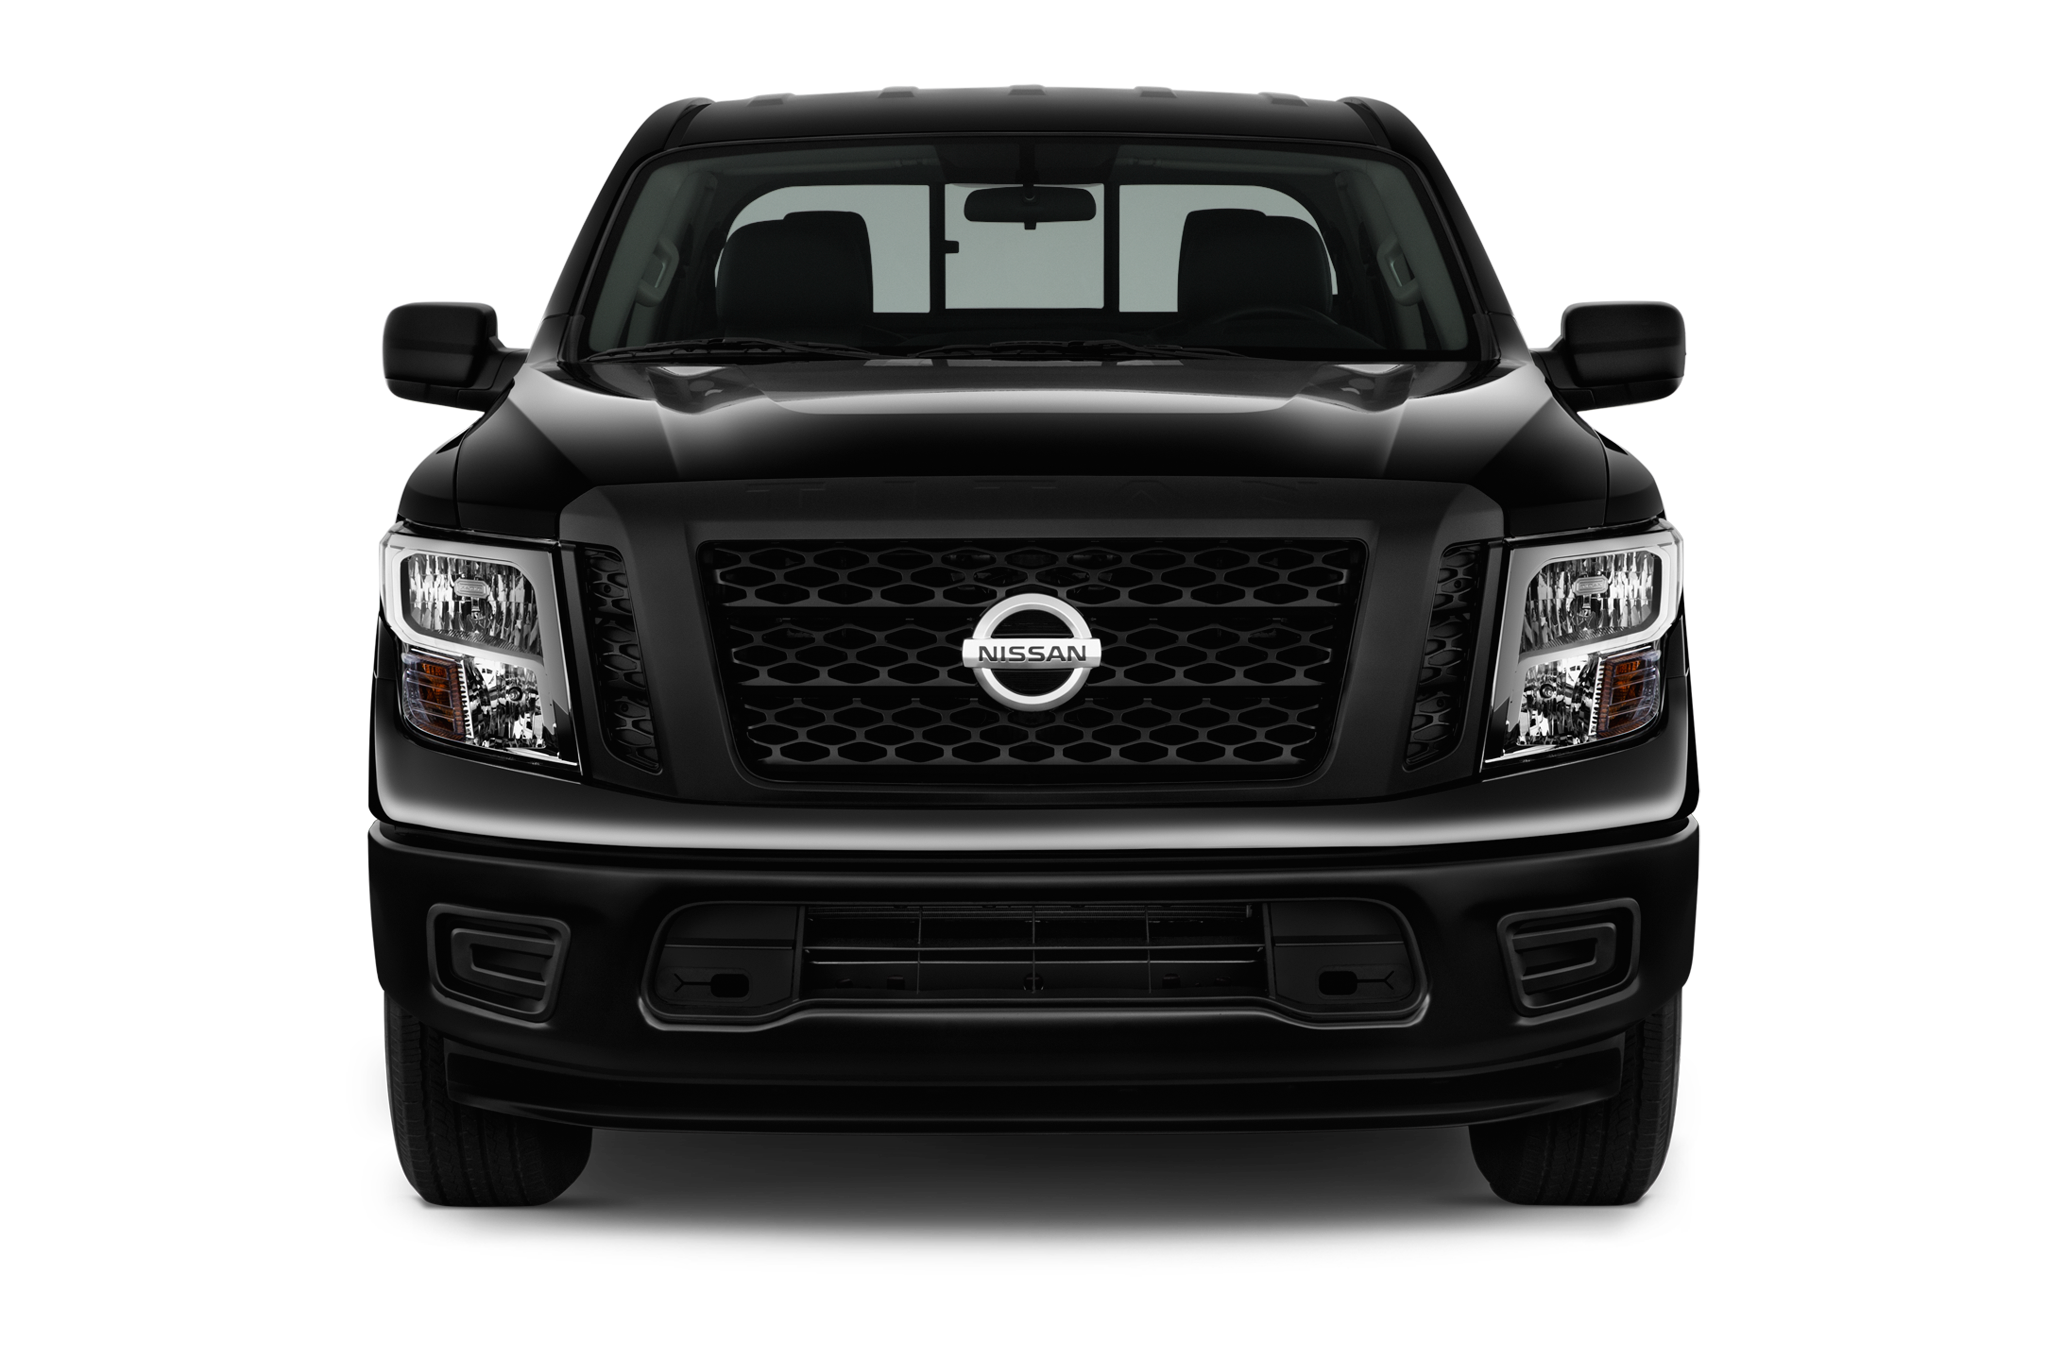 Honda clip bumper nissan. Give your titan a